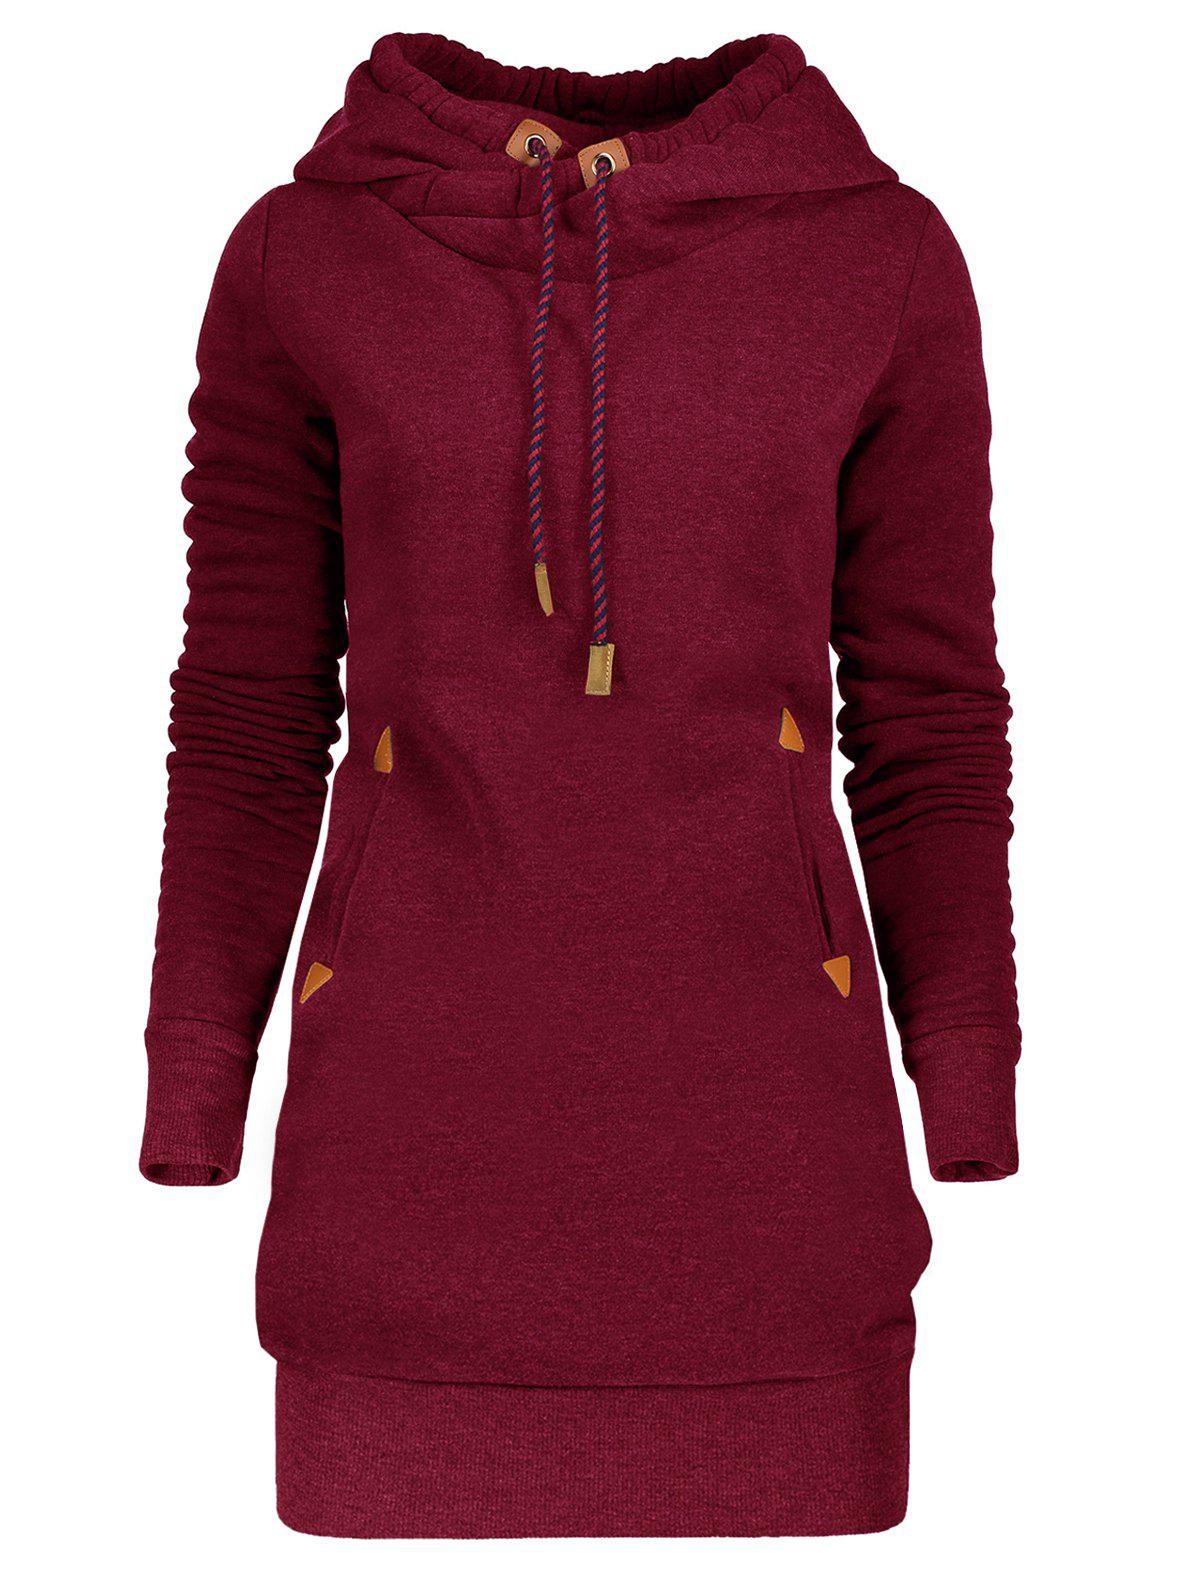 Tunic Drawstring Hoodie Dress with Pocket drawstring pocket hoodie with midi skirt